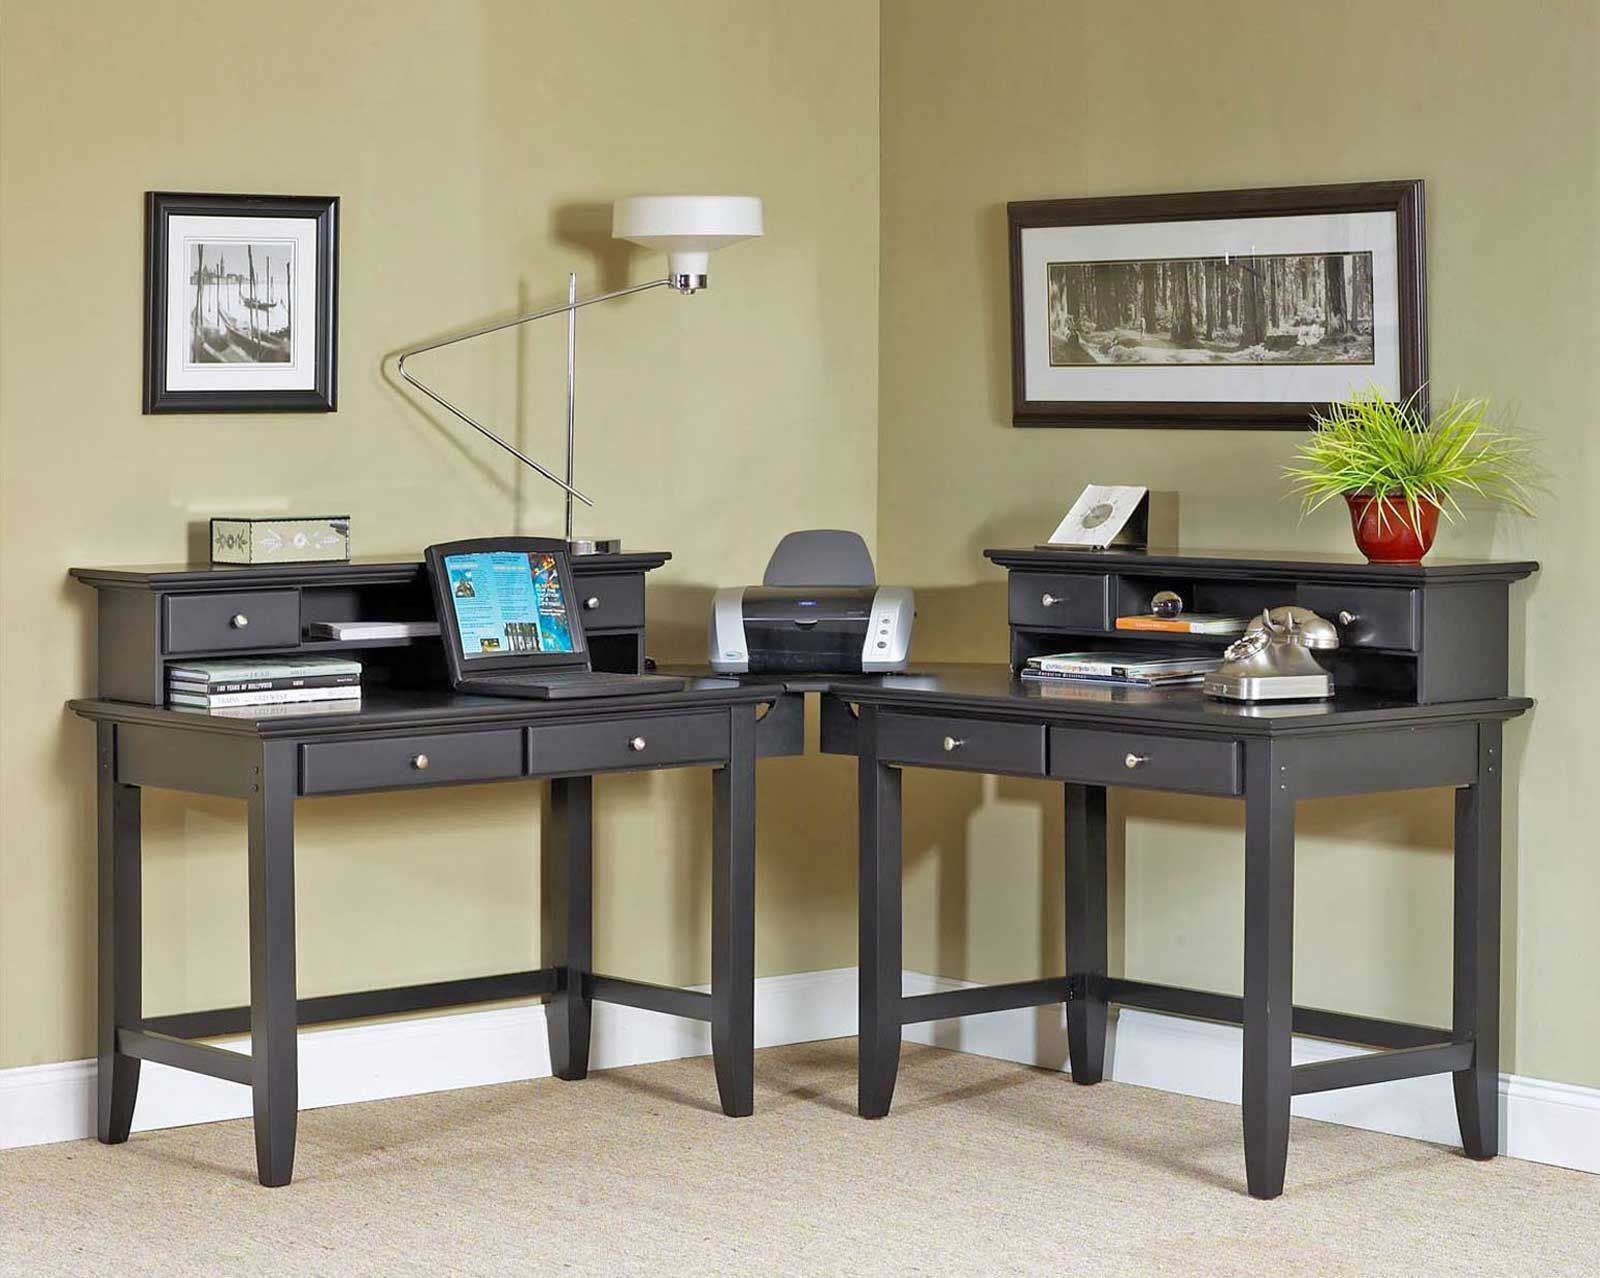 Computer Desk Ideas Unique And Simple Modern Computer Desks Mid Century  Home Office Designing Ideas With